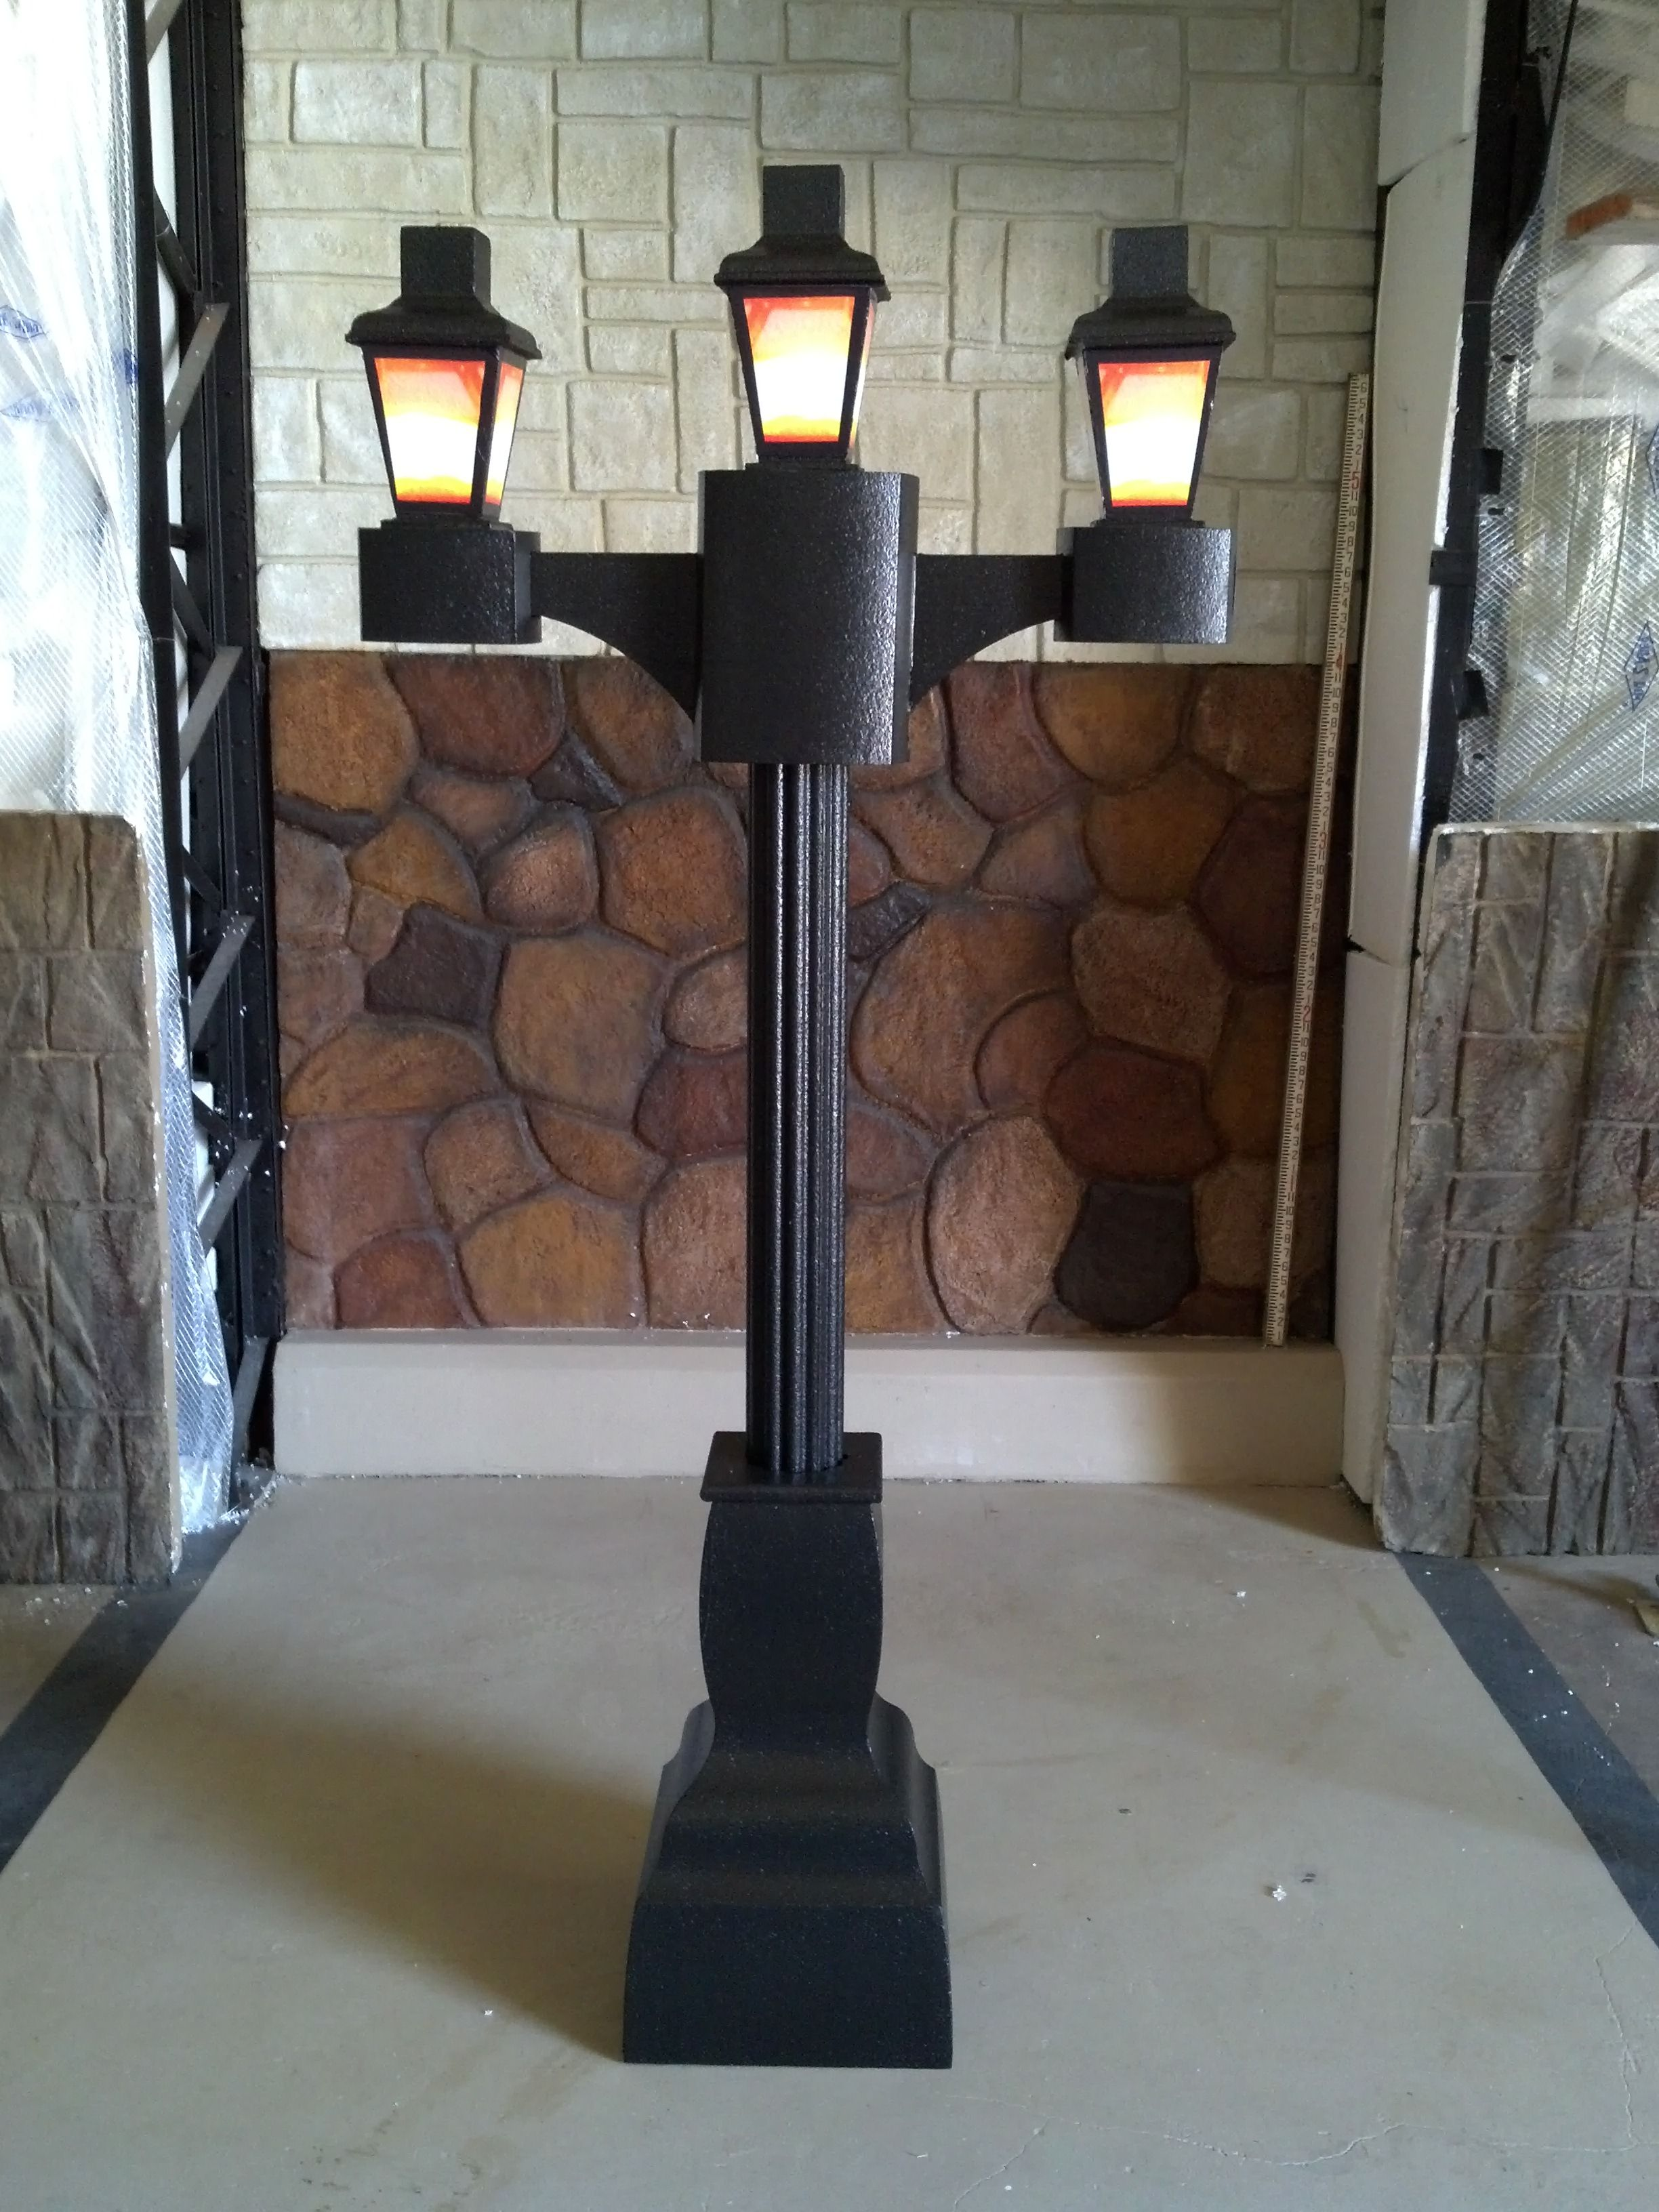 This Is A 6ft Tall Victorian Lamp Post Display Made From Eps